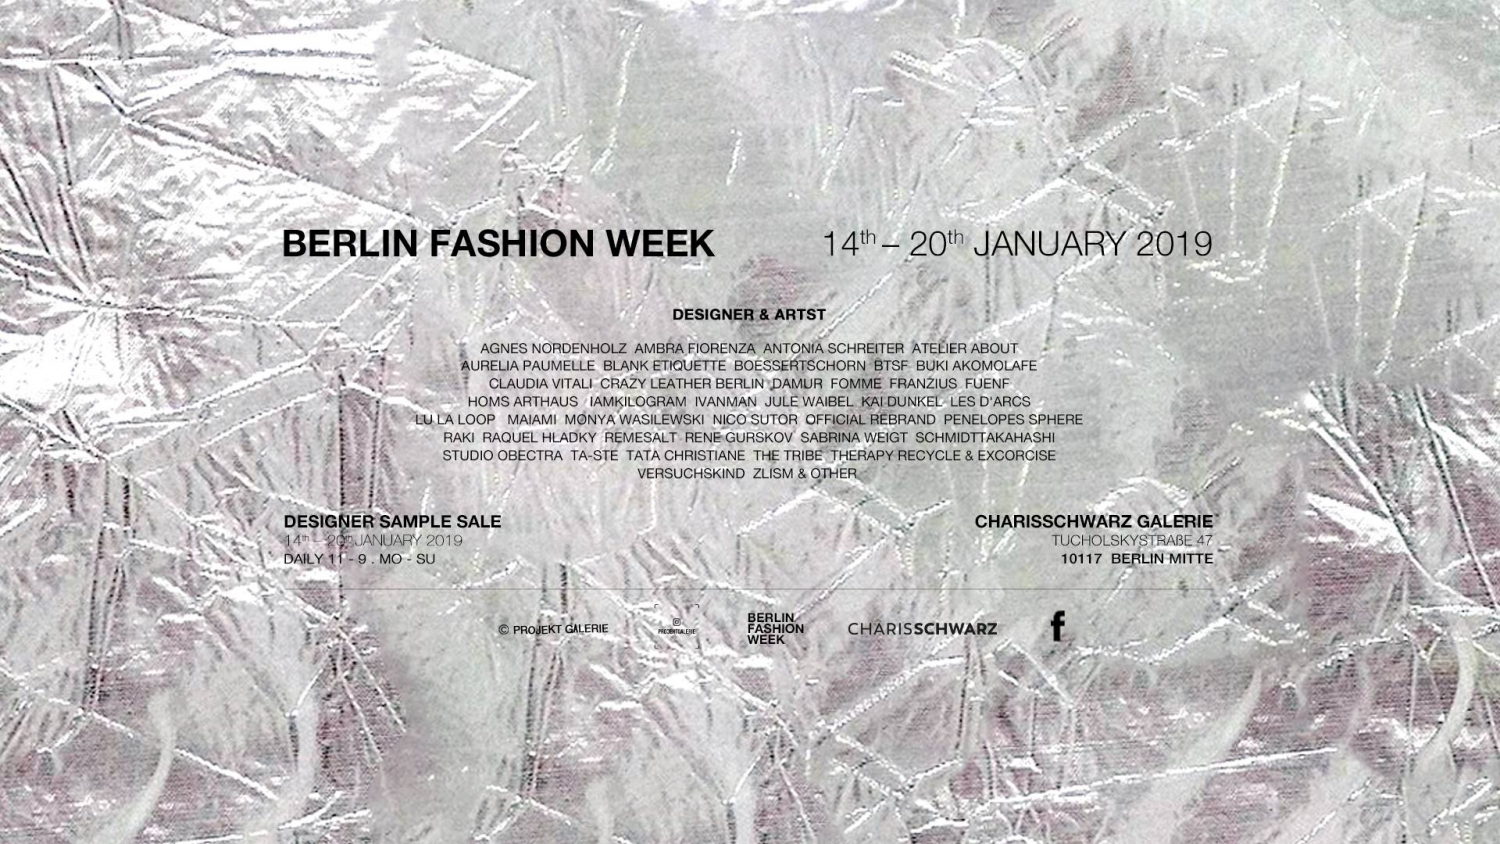 Berlin Fashion Week - Designer Sample Sale